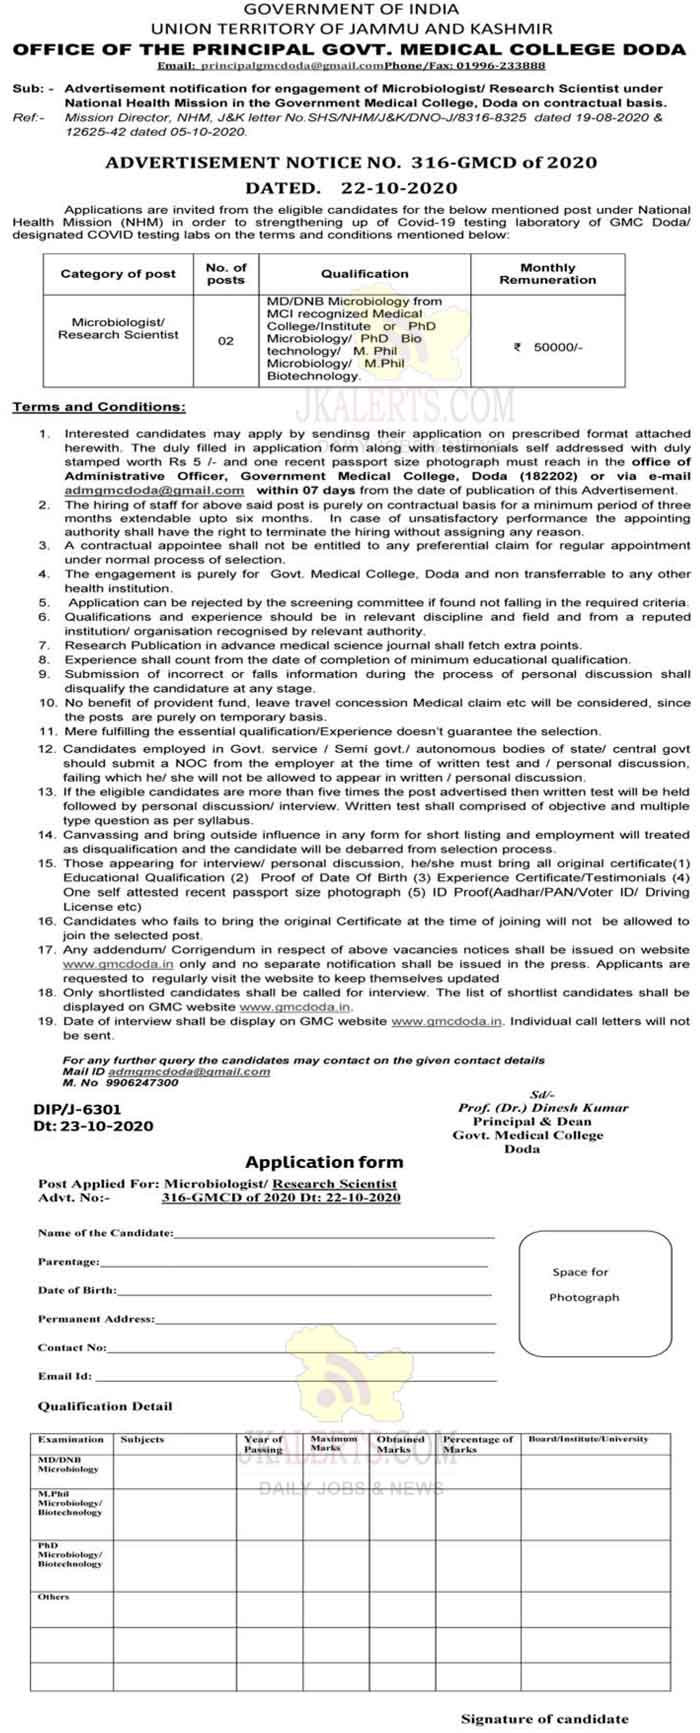 GMC Doda Microbiologist/ Research Scientist Jobs Recruitment 2020.